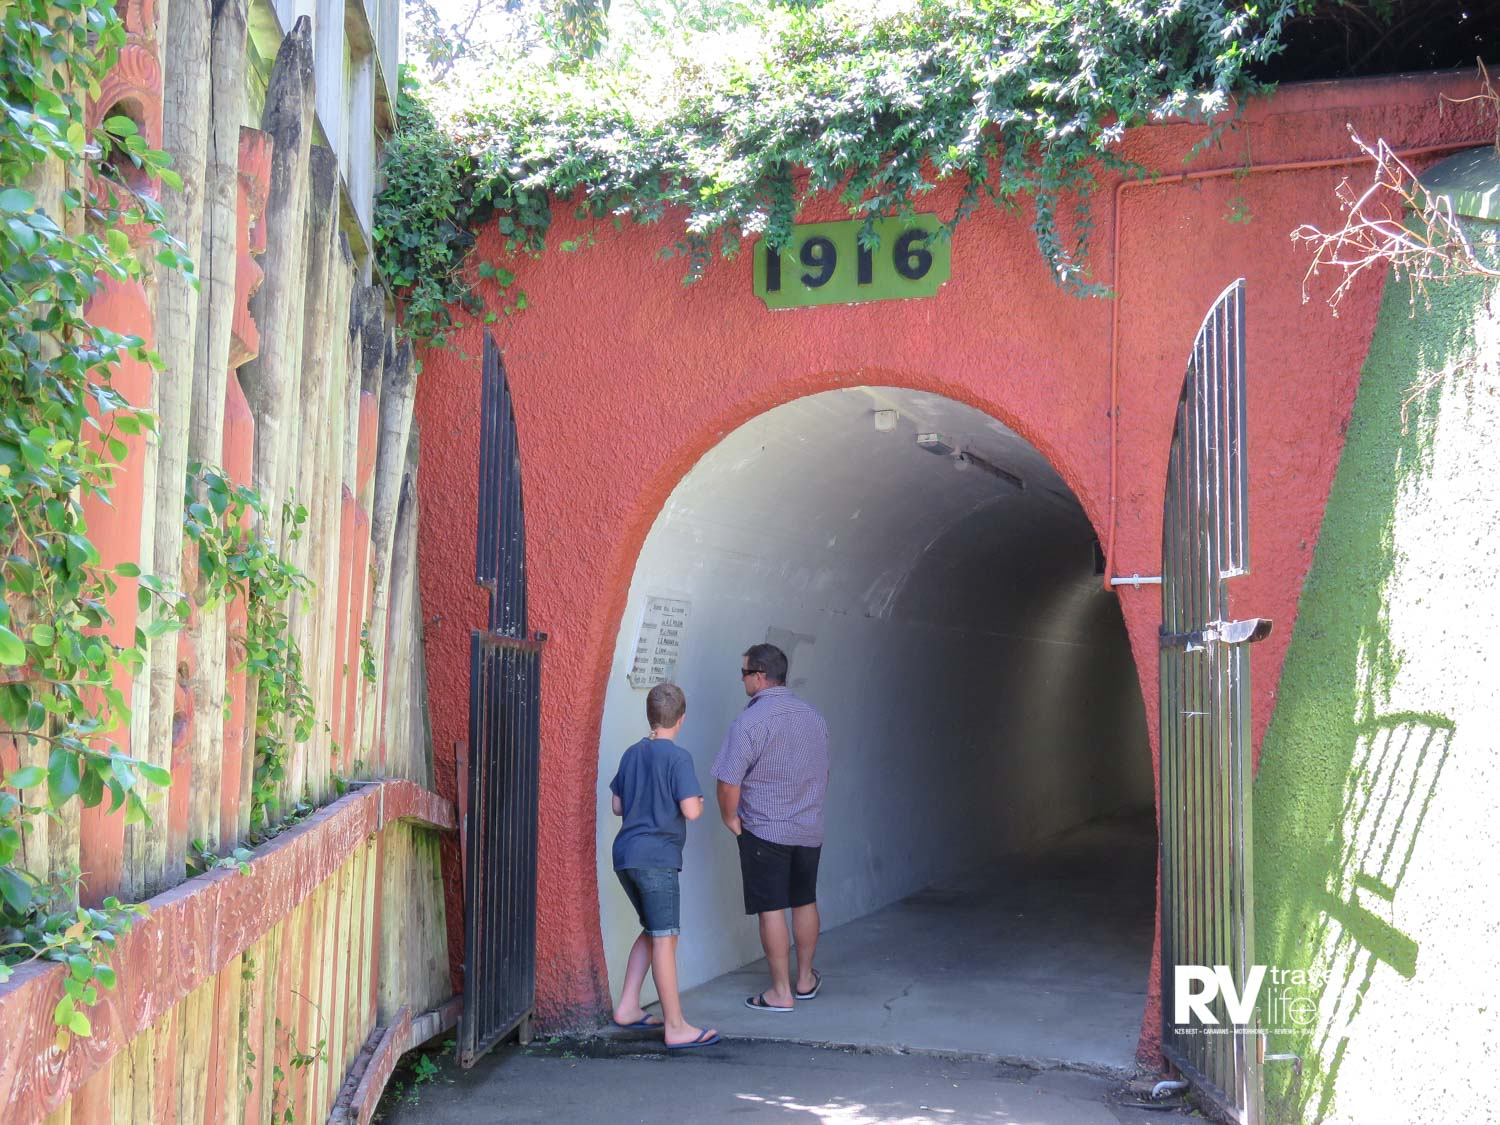 Begun in 1916 the tunnel opened in August 1919